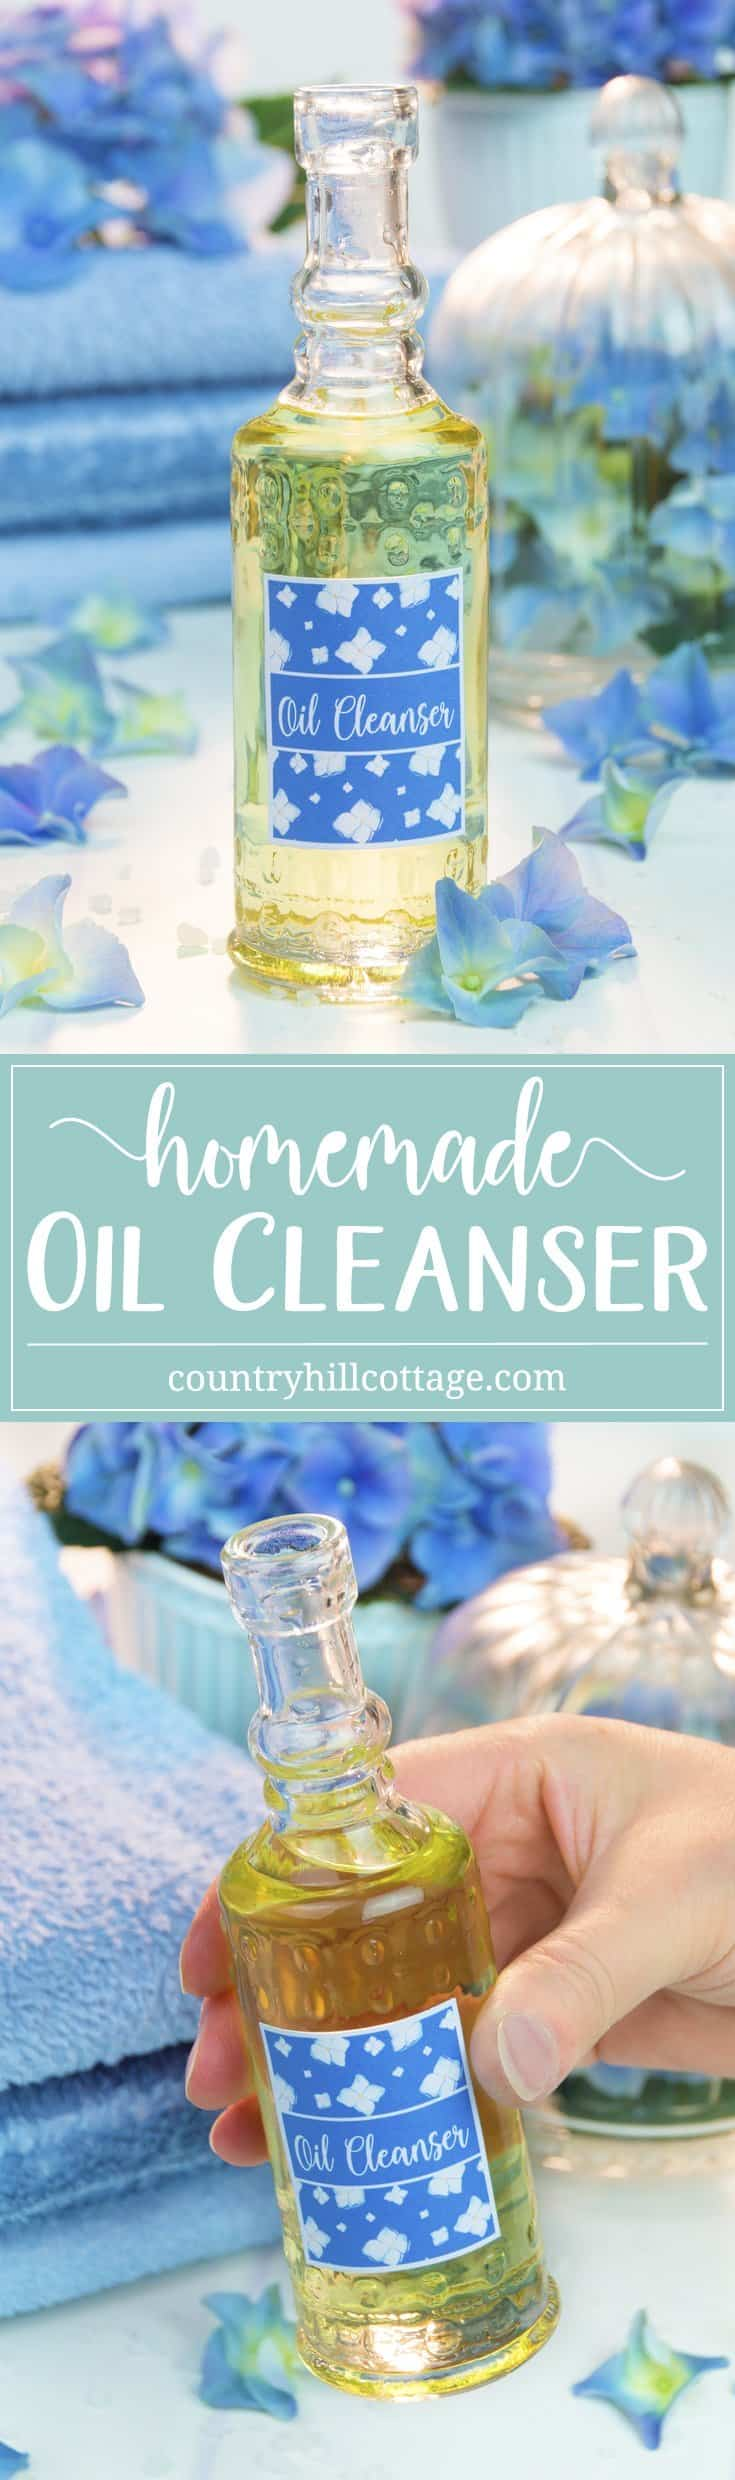 Get rid of all the grit and grime from the day with this DIY oil cleanser. It's a great and gentle way to remove makeup and clear clogged pores. If you have oily, acne-prone skin, it may seem counterintuitive to use oil for cleaning. But the opposite is true. Jojoba oil using signals the skin to produce less sebum and grapeseed oil is anti-inflammatory and rich in vitamin E. #essentialoils #oilcleanser #skincare #beautyrecipe #diybeauty #clearskin | countryhillcottage.com